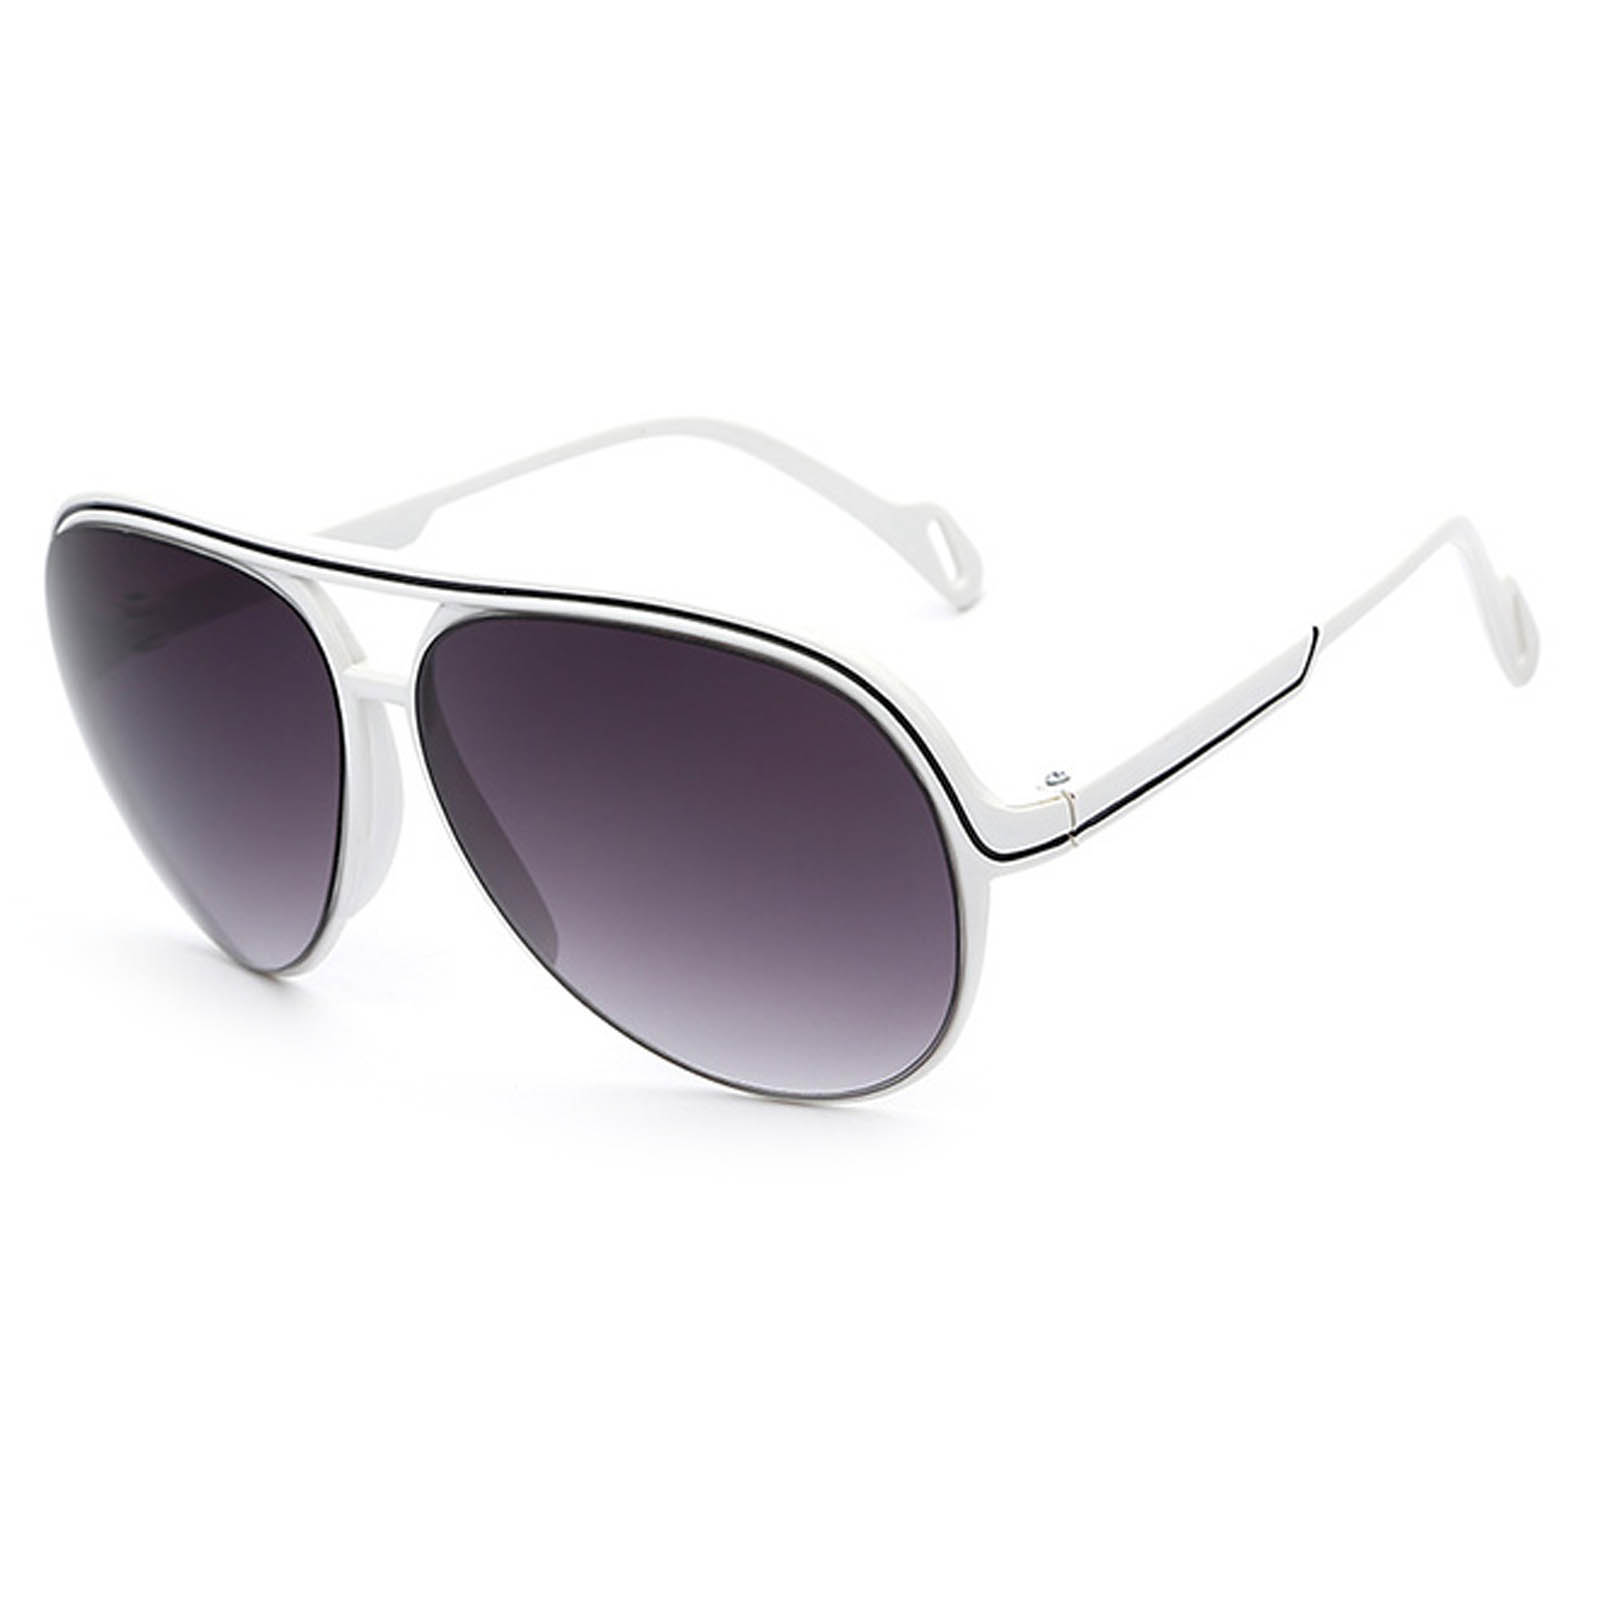 f907fcf55c OWL ® 047 C2 Aviator Eyewear Sunglasses Women s Men s Plastic White Frame  Smoke Lens One Pair